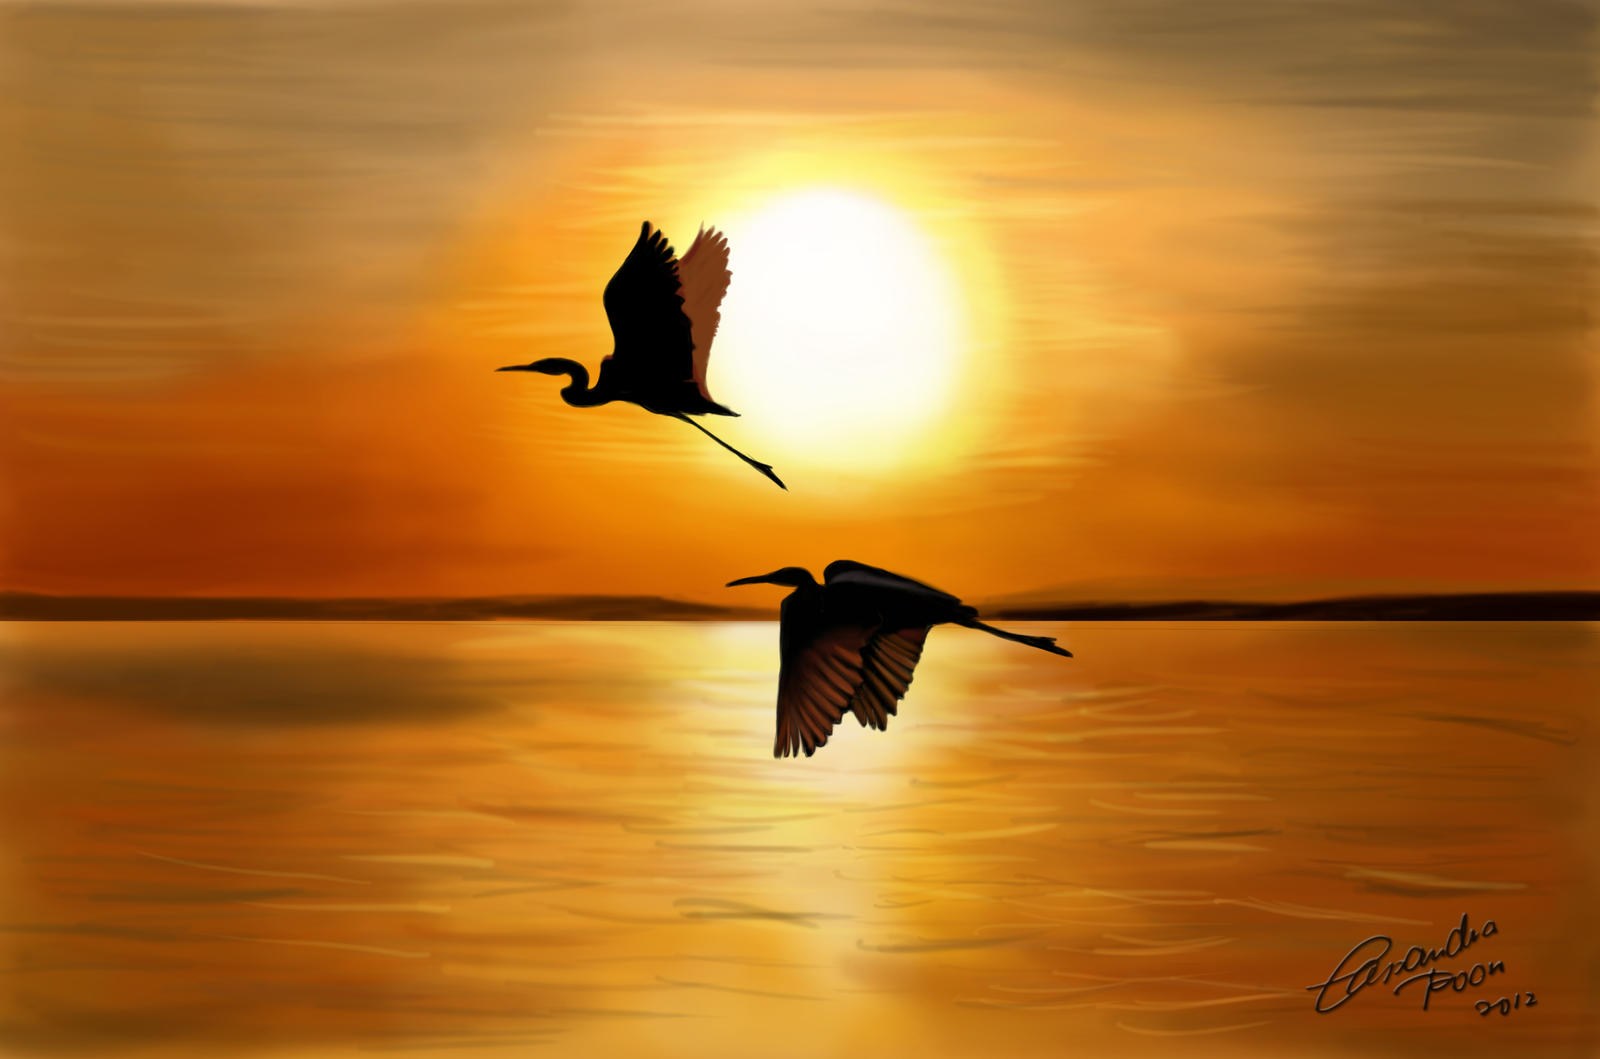 Crane sunrise by CassPoon on DeviantArt